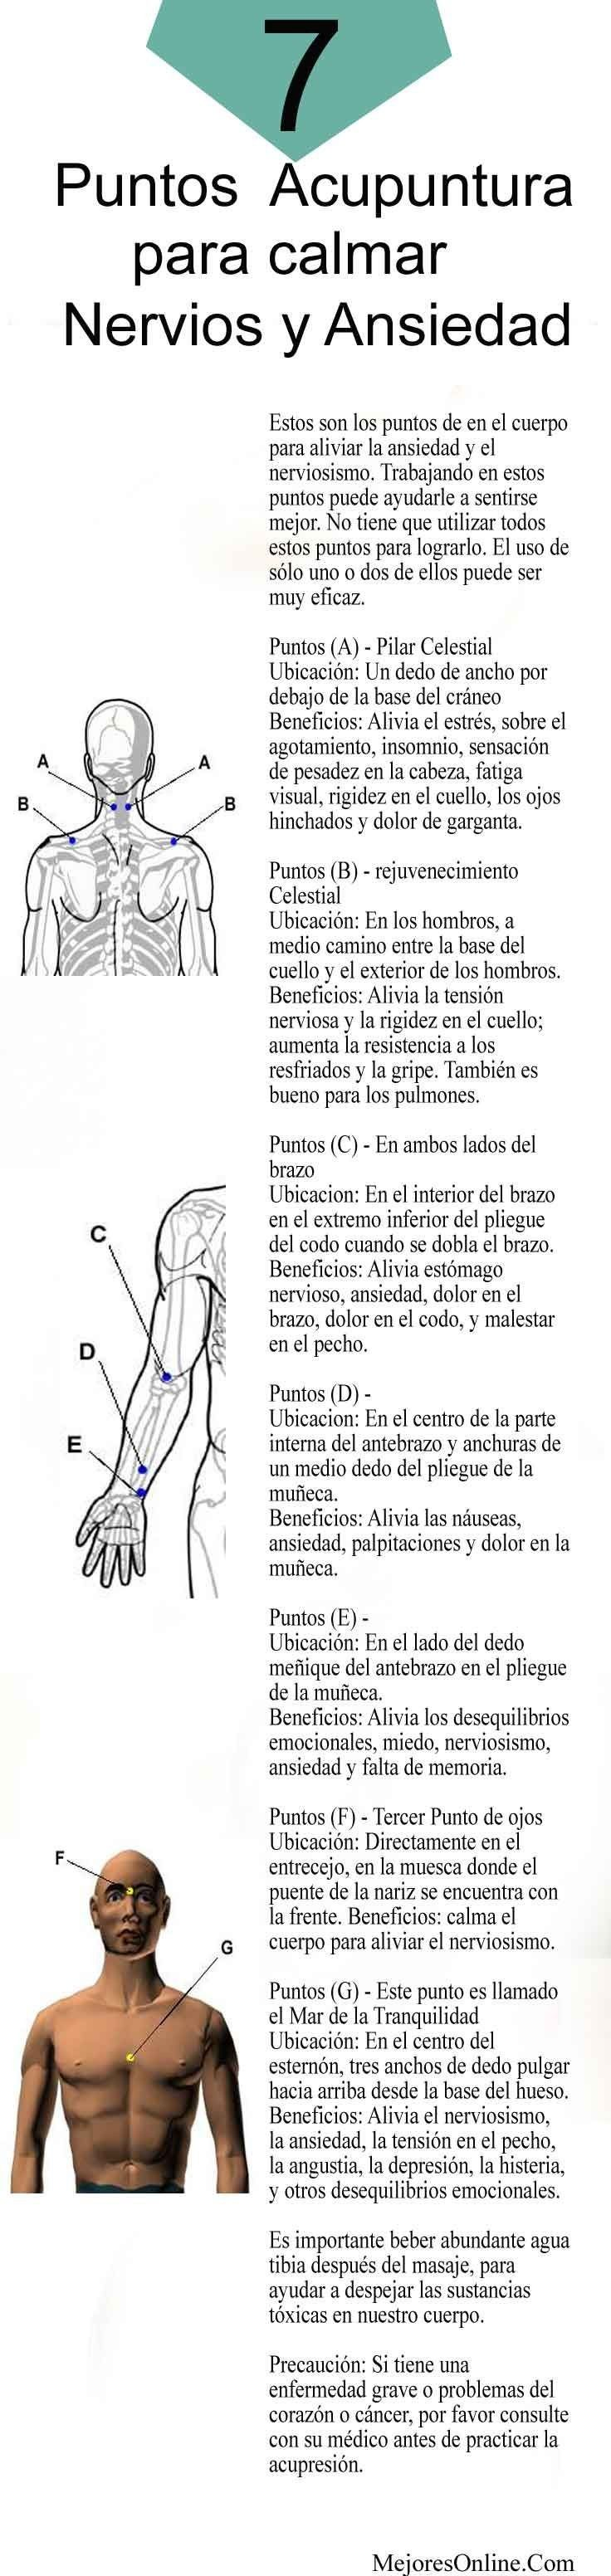 91 best MUSCULOS images on Pinterest | Health, Natural medicine and ...